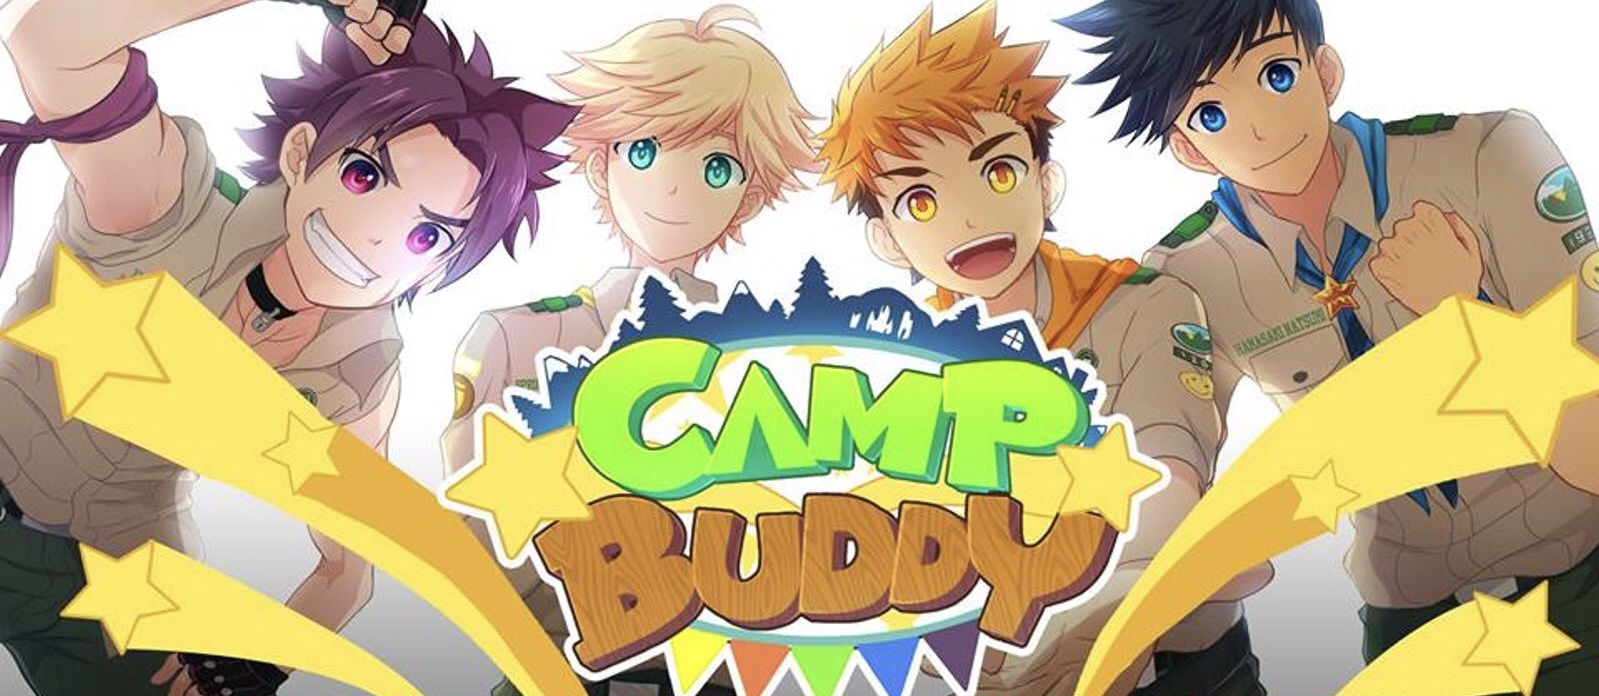 Camp Buddy - Otomi Games - Free Download Offline Games Crack